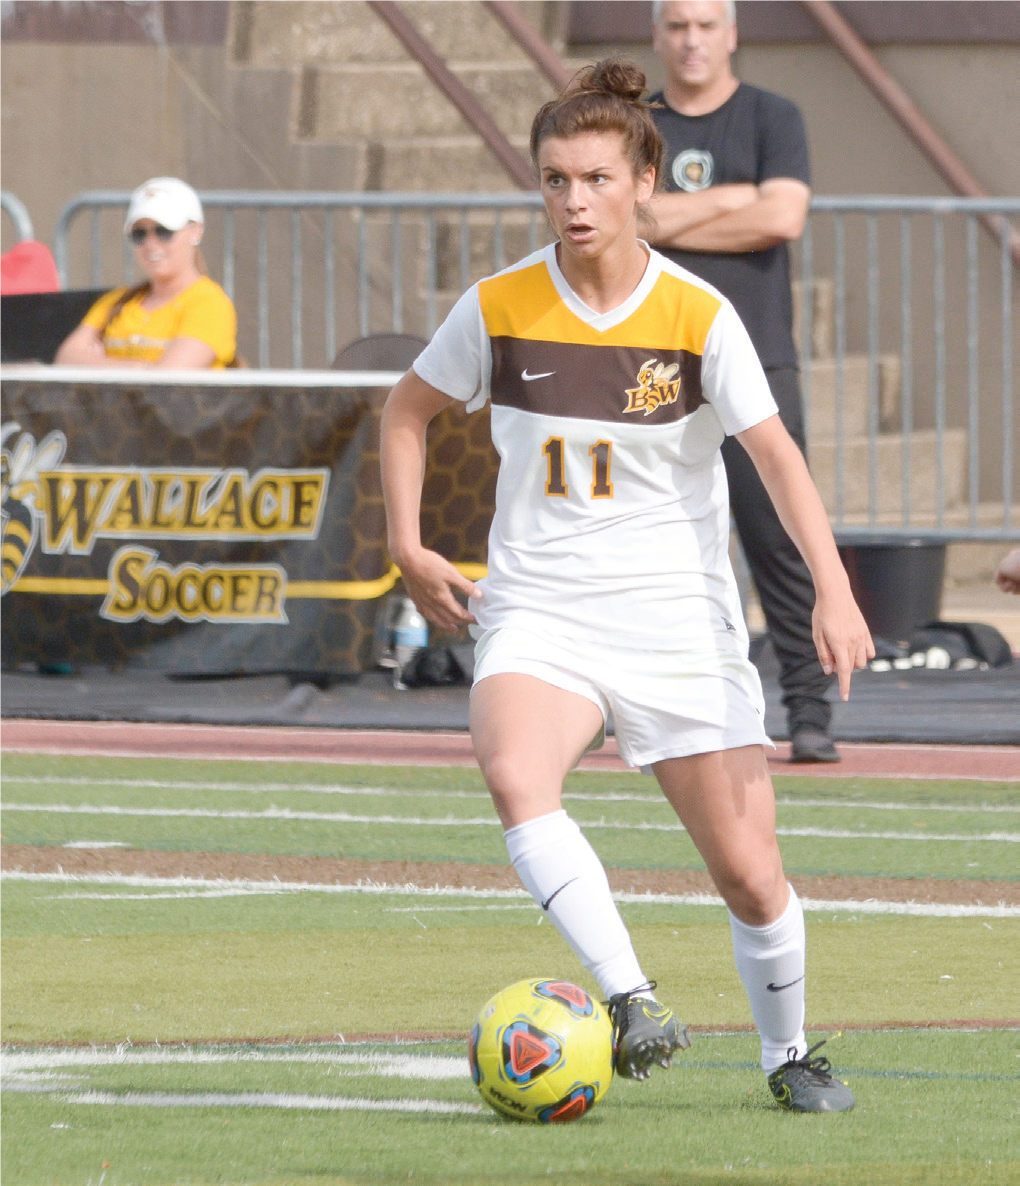 Senior three-time All-OAC Rachel Bender scored goals in both the first and second half against Waynesburg